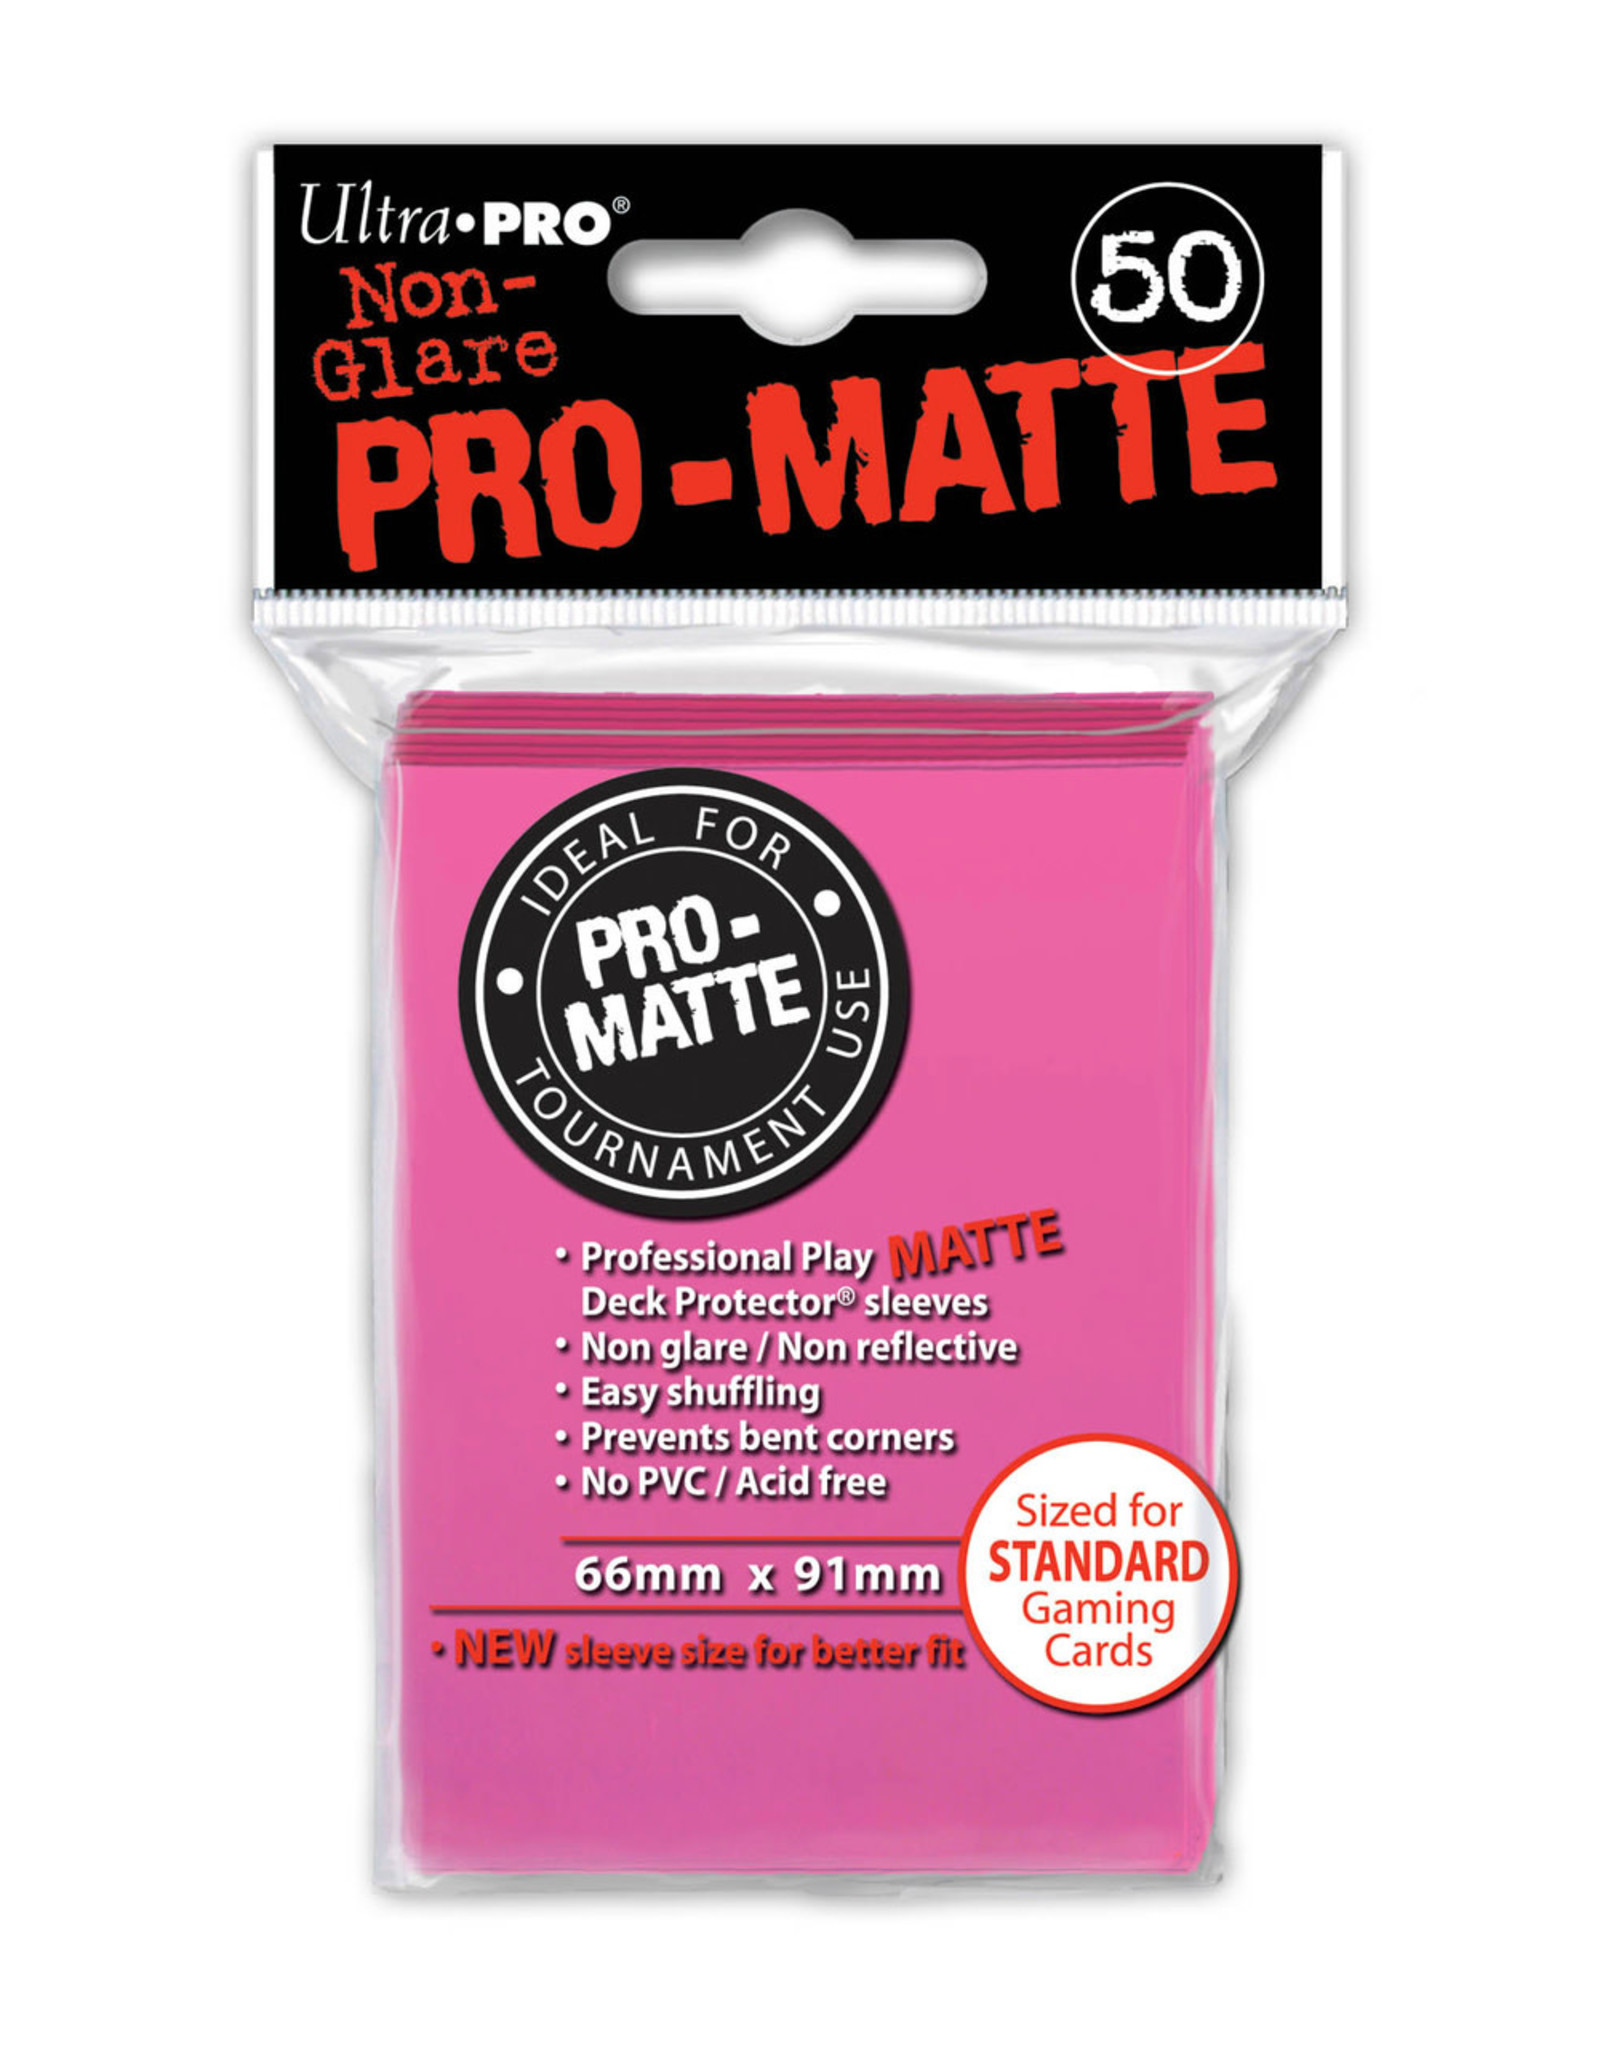 Pro Matte Deck Protector Sleeves 50ct Pink